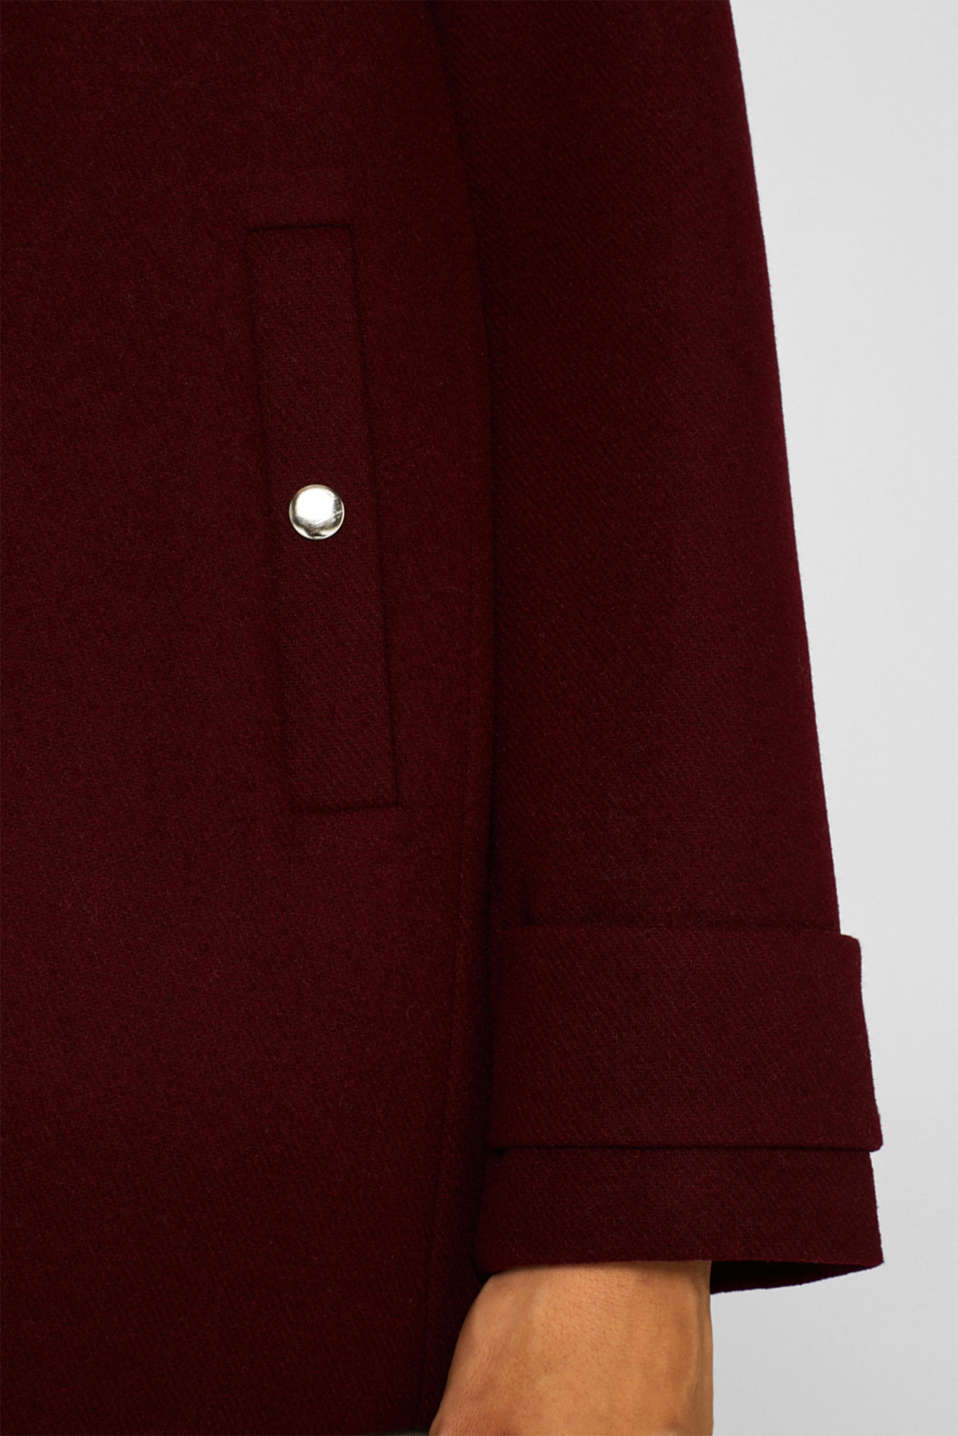 Jackets outdoor woven, BORDEAUX RED, detail image number 2